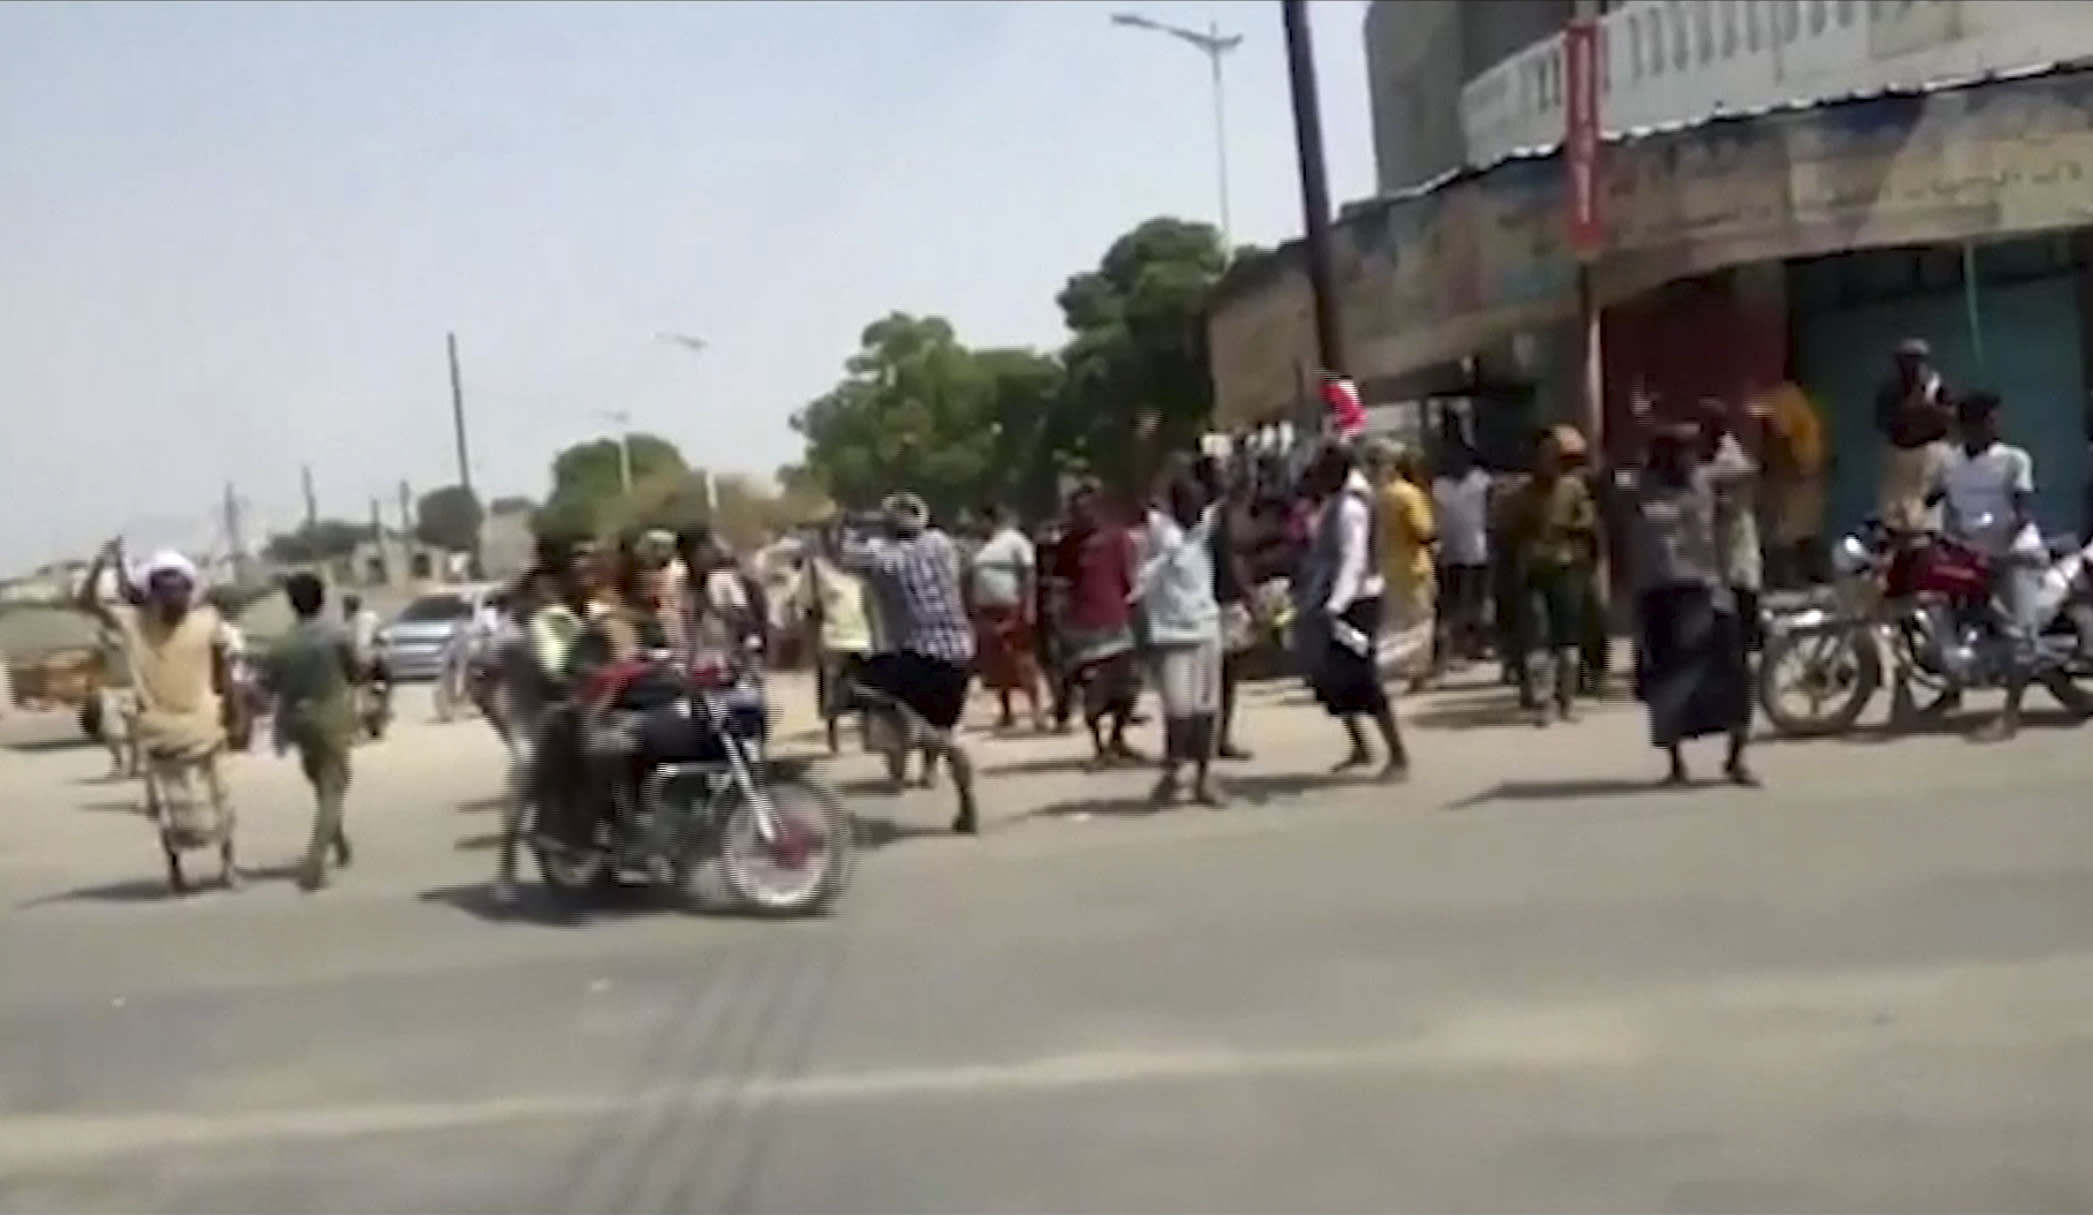 In this frame grab from video provided by Yemen Today, residents cheered and chanted as Yemeni army vehicles entered Zinjibar, Yemen, Wednesday, Aug. 28, 2019. Yemeni officials and local residents say forces loyal to the country's internationally recognized government have wrested control of the capital of southern Abyan province from separatists backed by the United Arab Emirates. They say government forces on Wednesday pushed the UAE-backed militia, known as the Security Belt, out of Zinjibar after clasher that left at least one dead and 30 wounded fighters. (Yemen Today via AP)